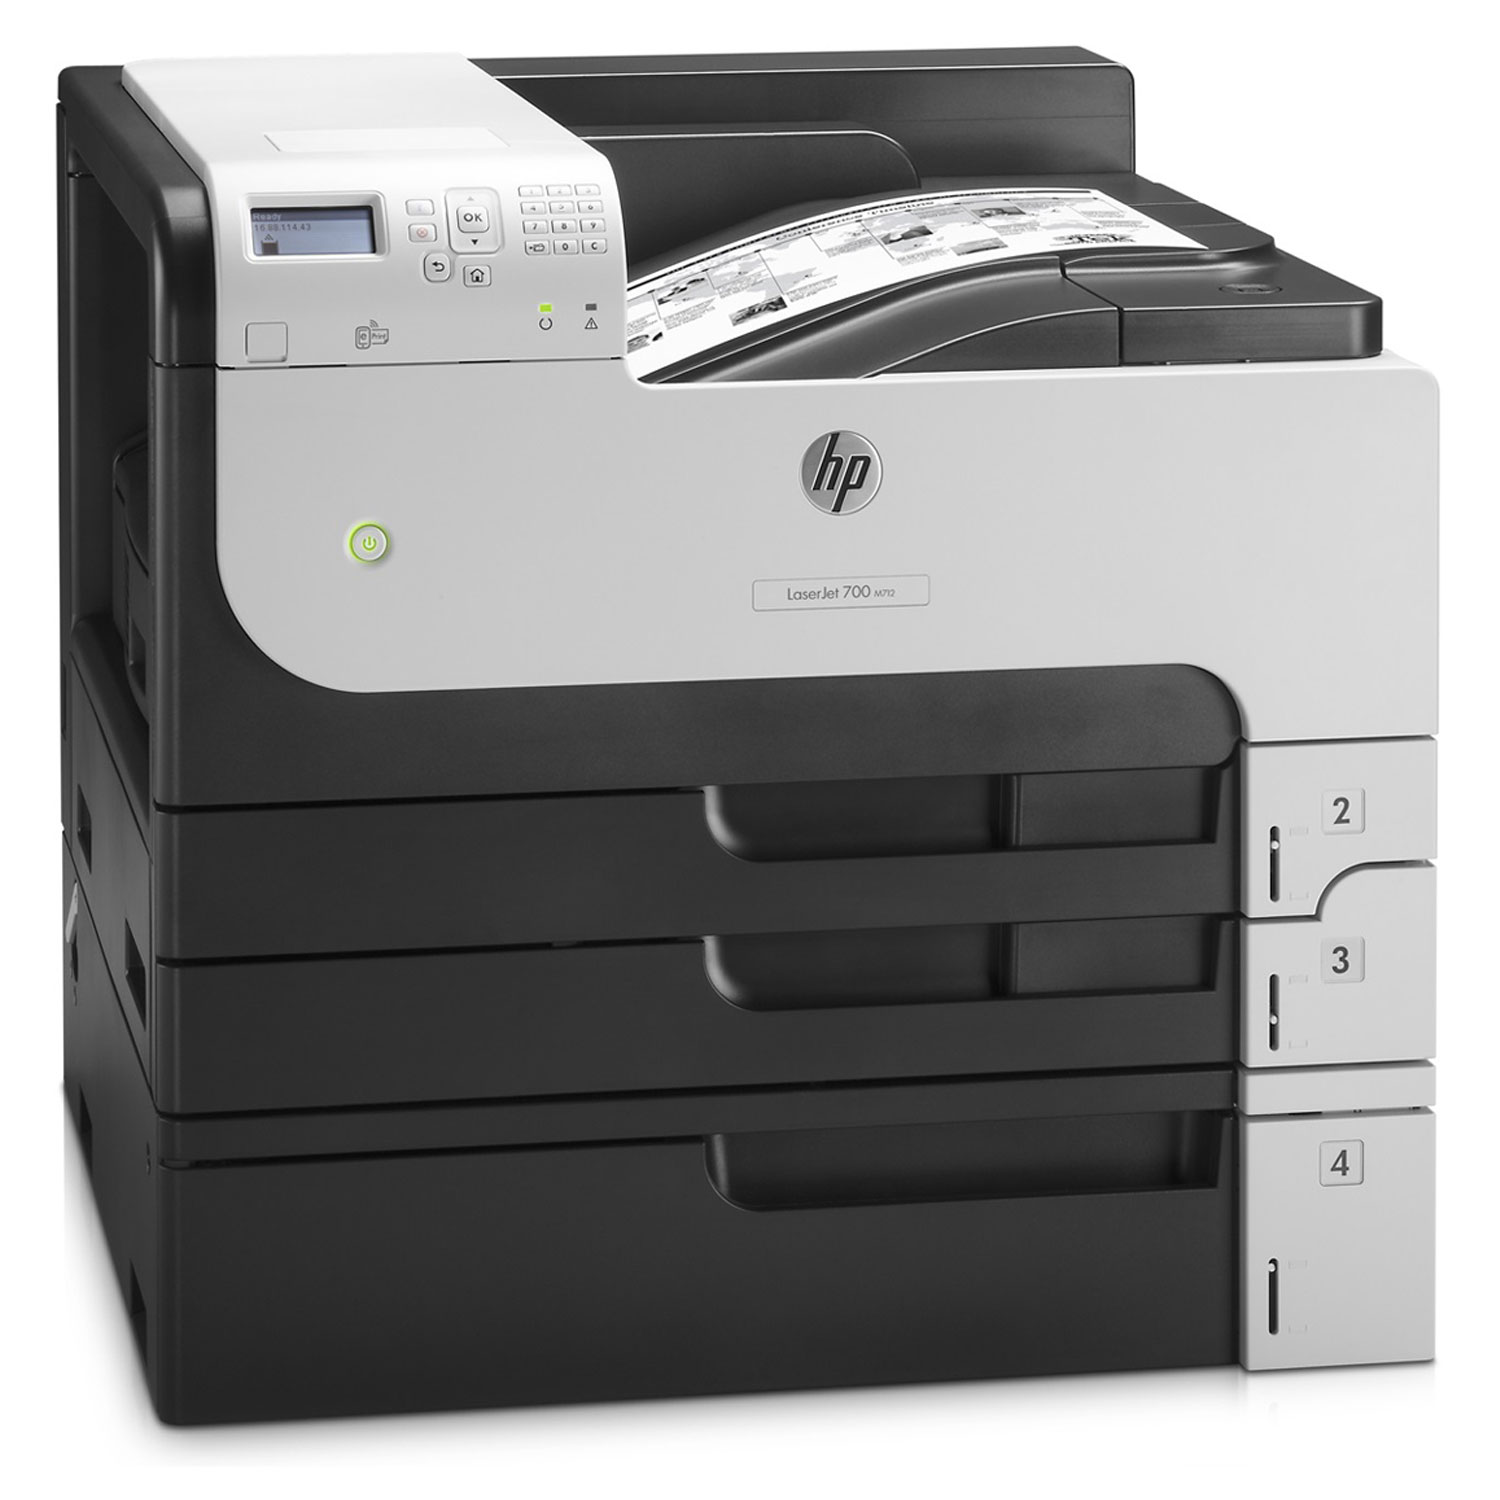 hp laserjet enterprise 700 m712xh imprimante laser hp sur ldlc. Black Bedroom Furniture Sets. Home Design Ideas